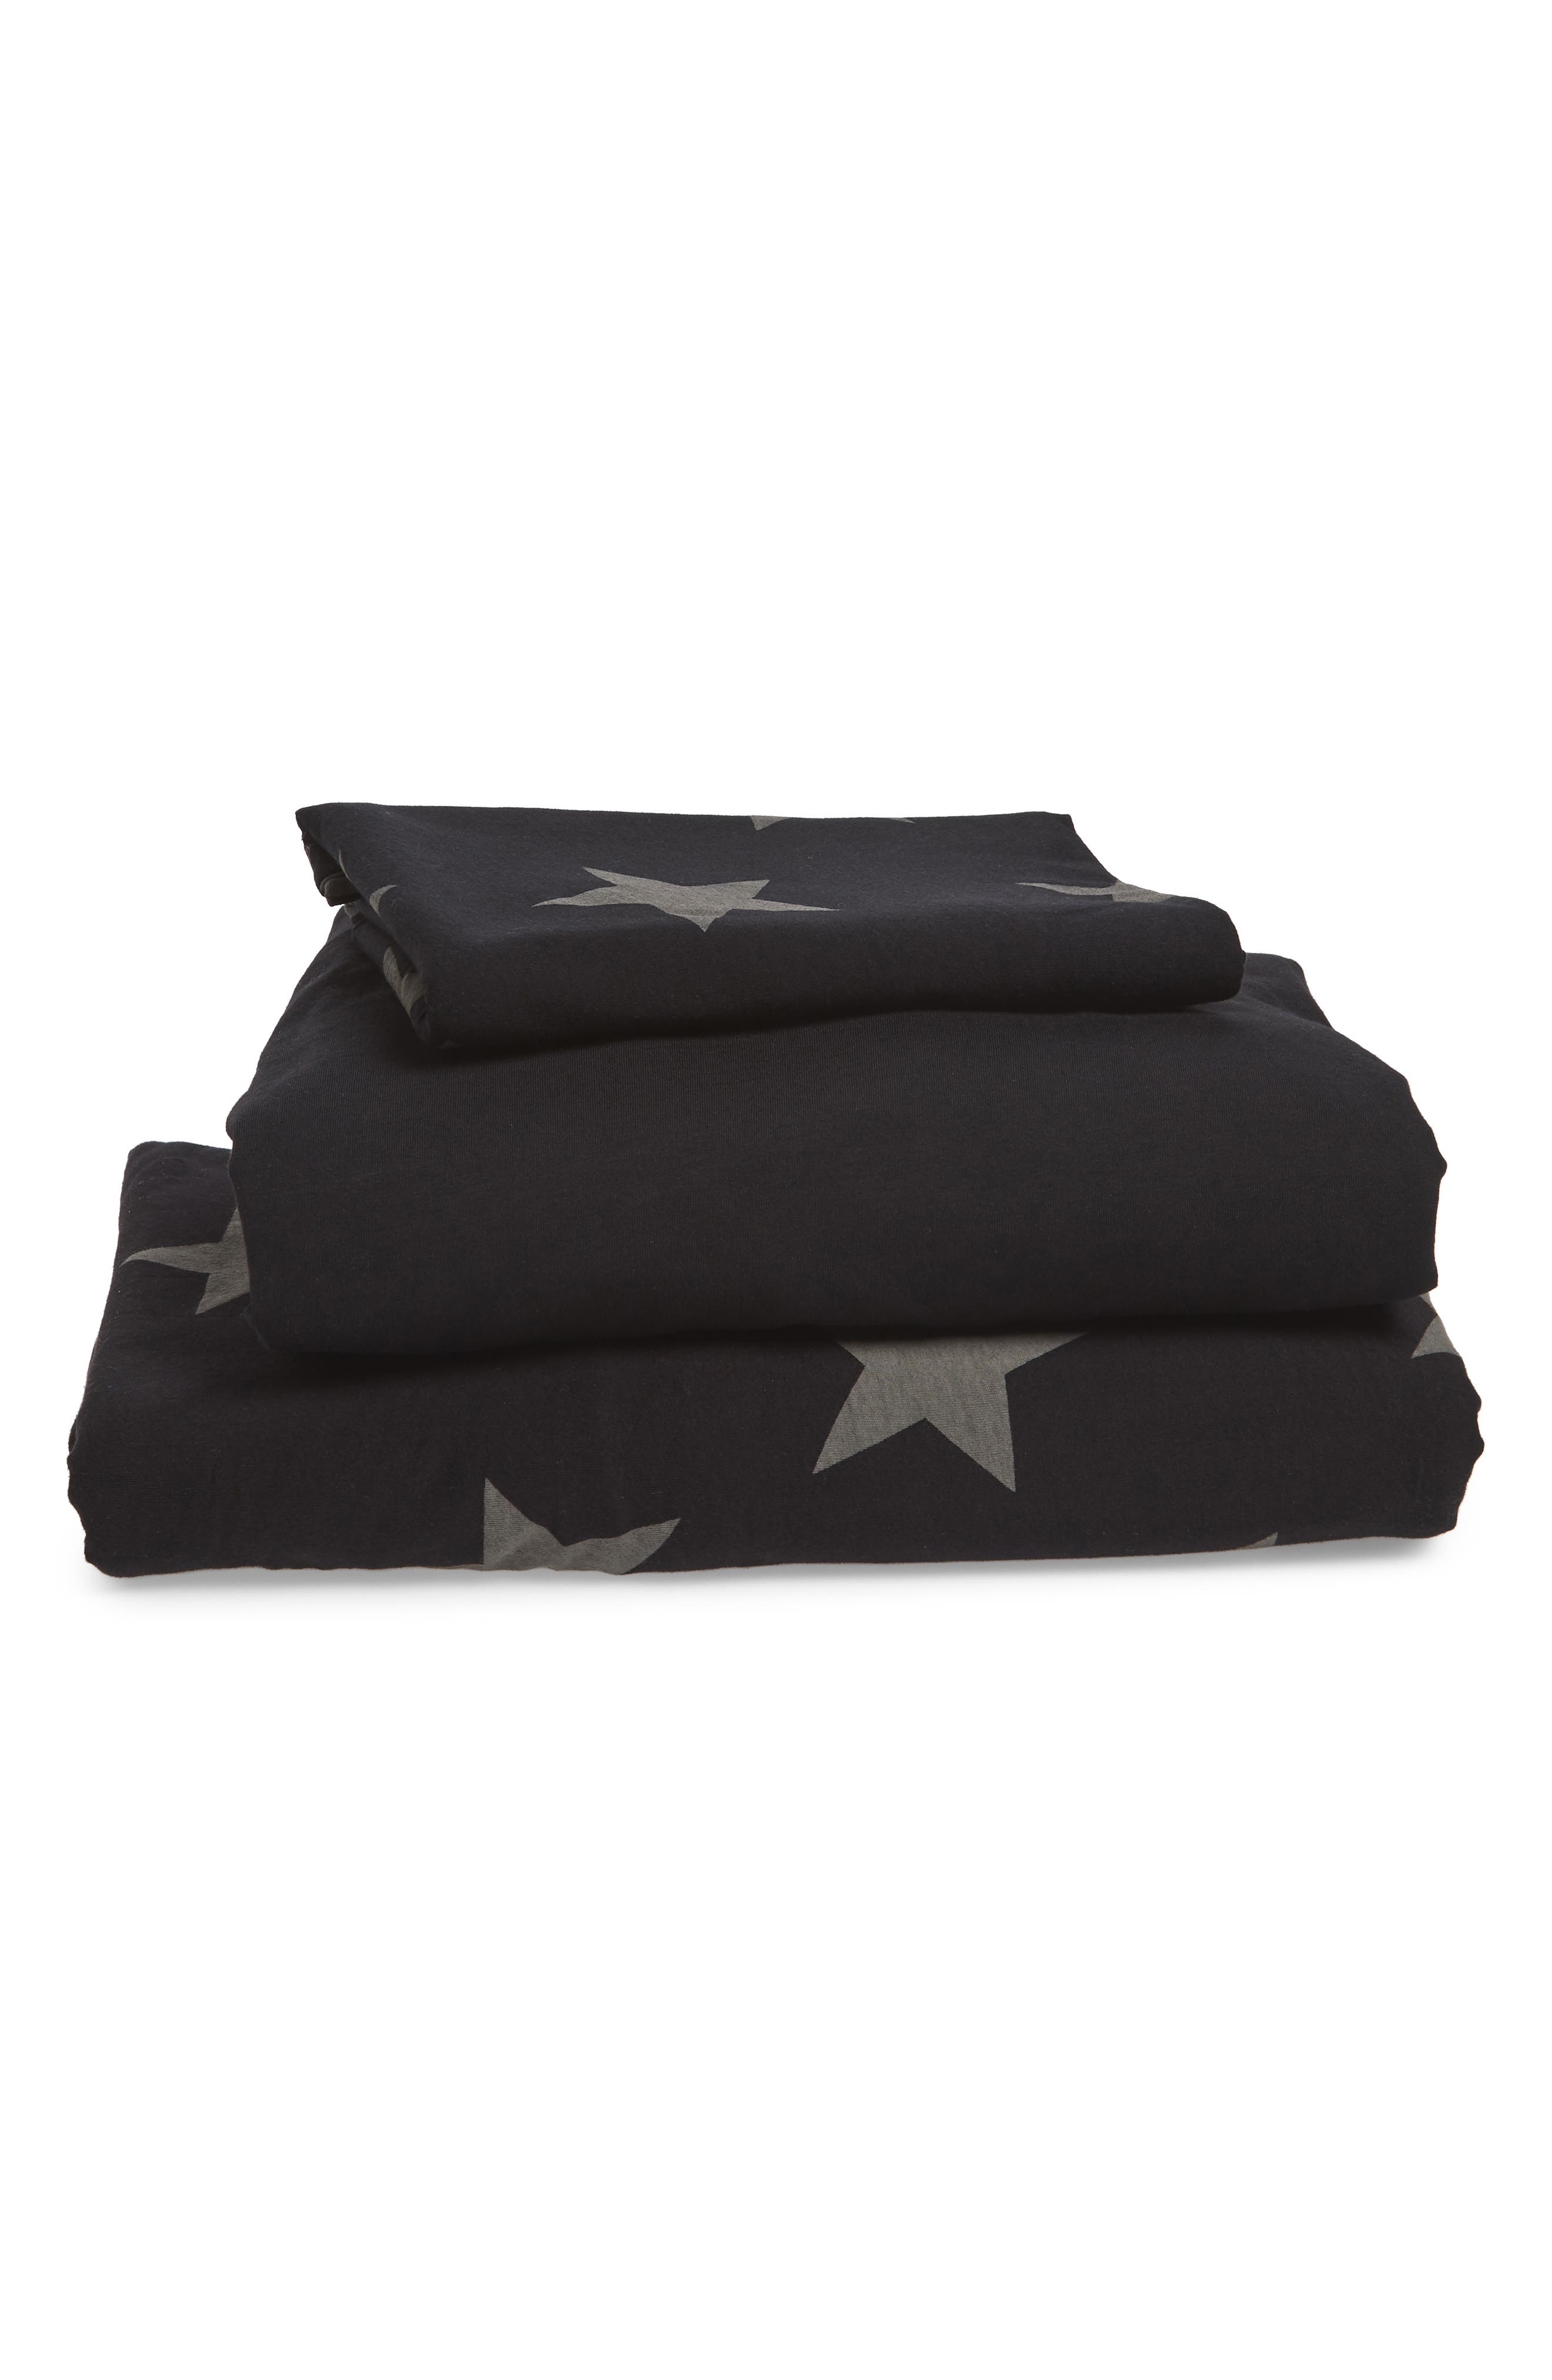 Star Duvet Cover & Sheet Set,                             Main thumbnail 1, color,                             BLACK